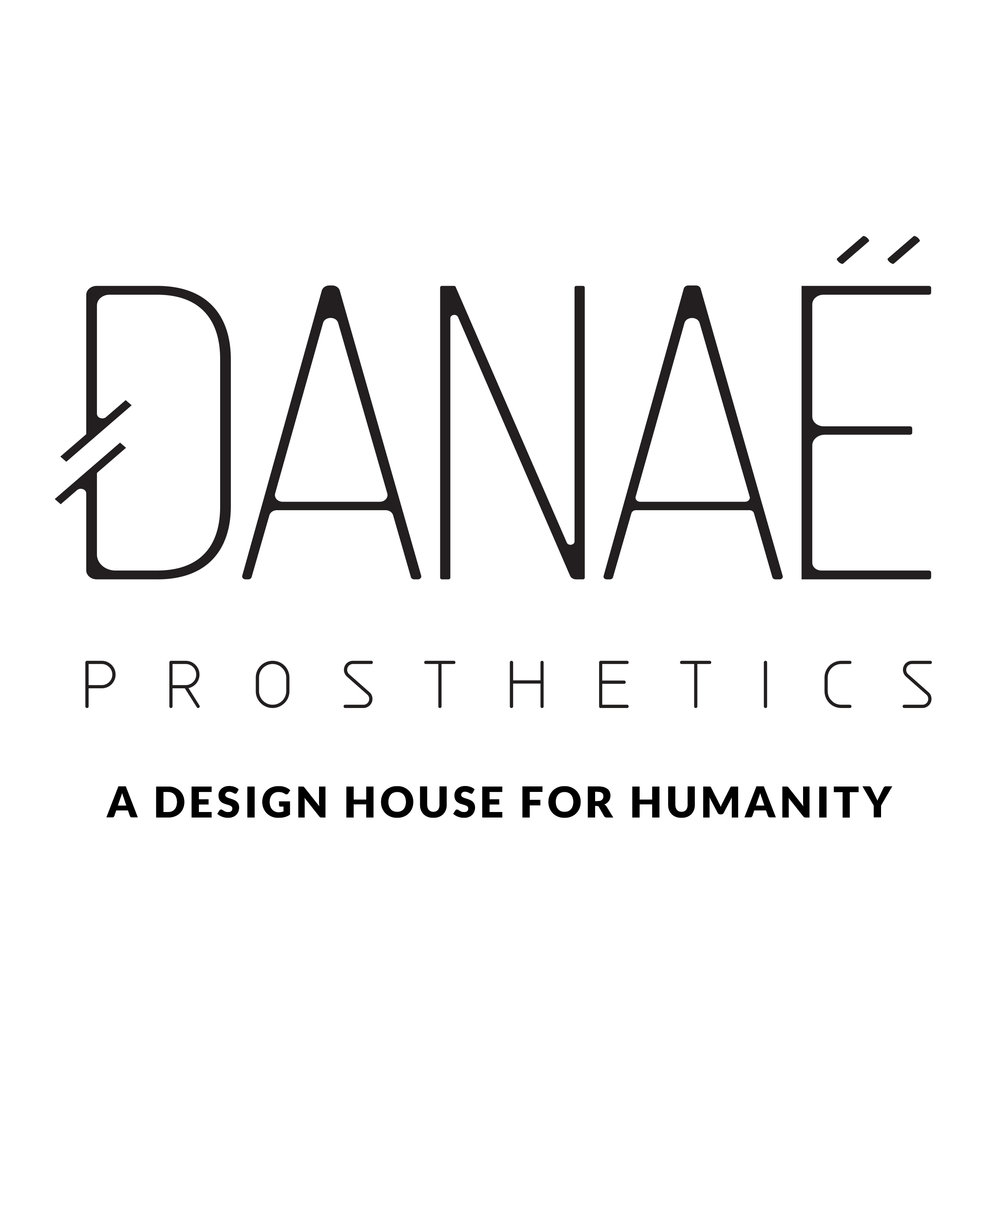 danae_logo_design_house_for_humanity.jpg